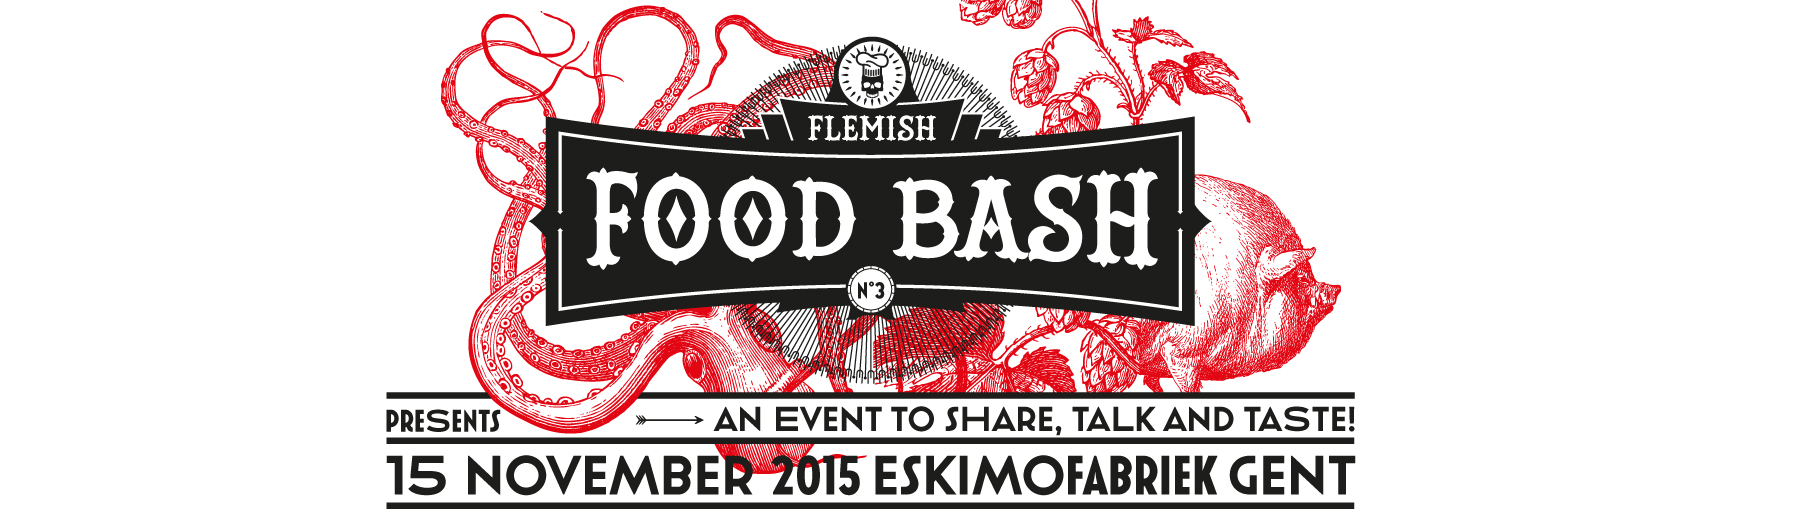 Flemish Food Bash 3